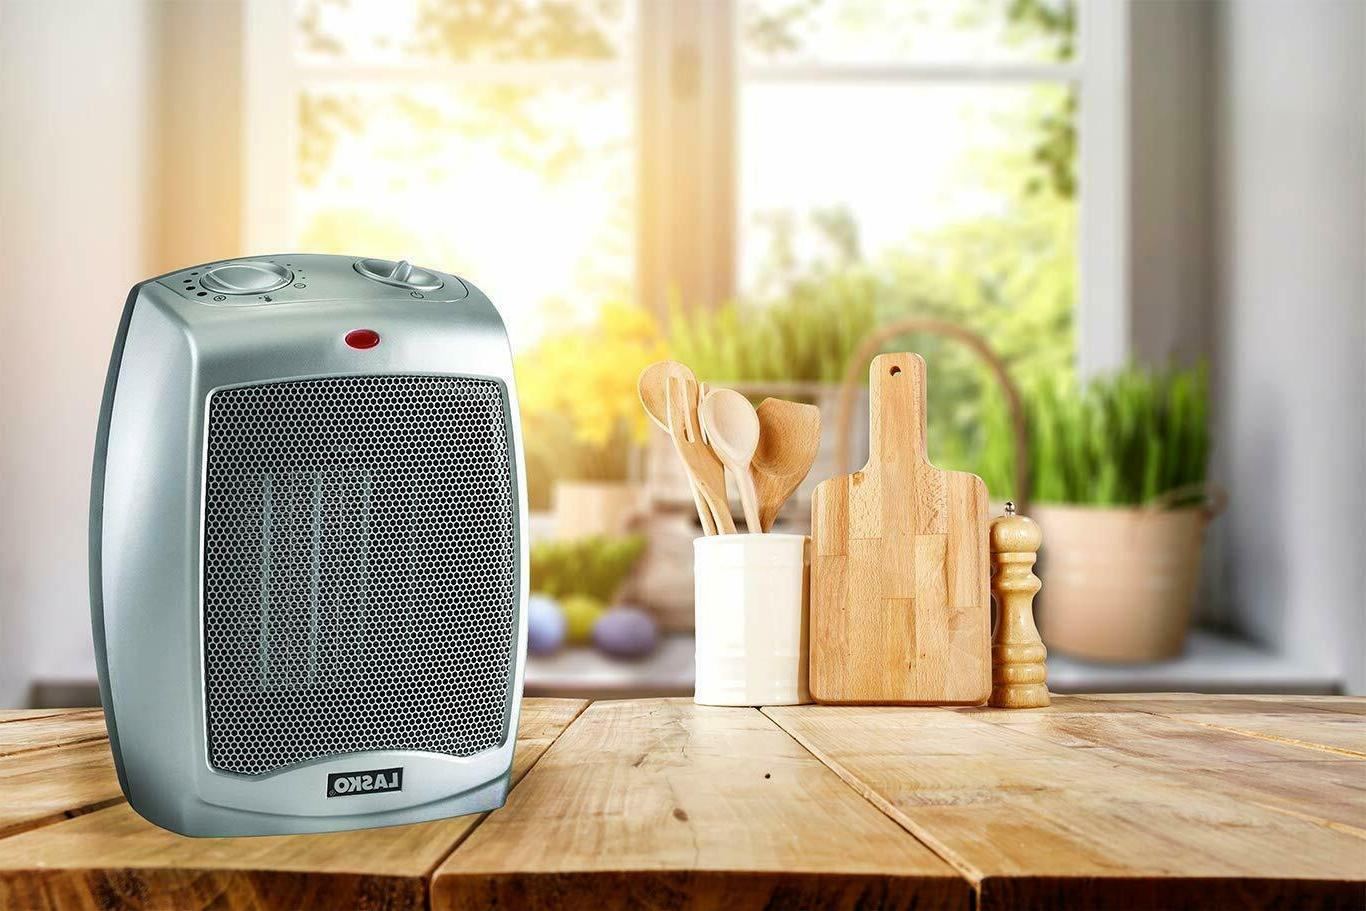 Ceramic Portable Space 754200 Heater Adjustable - Home or